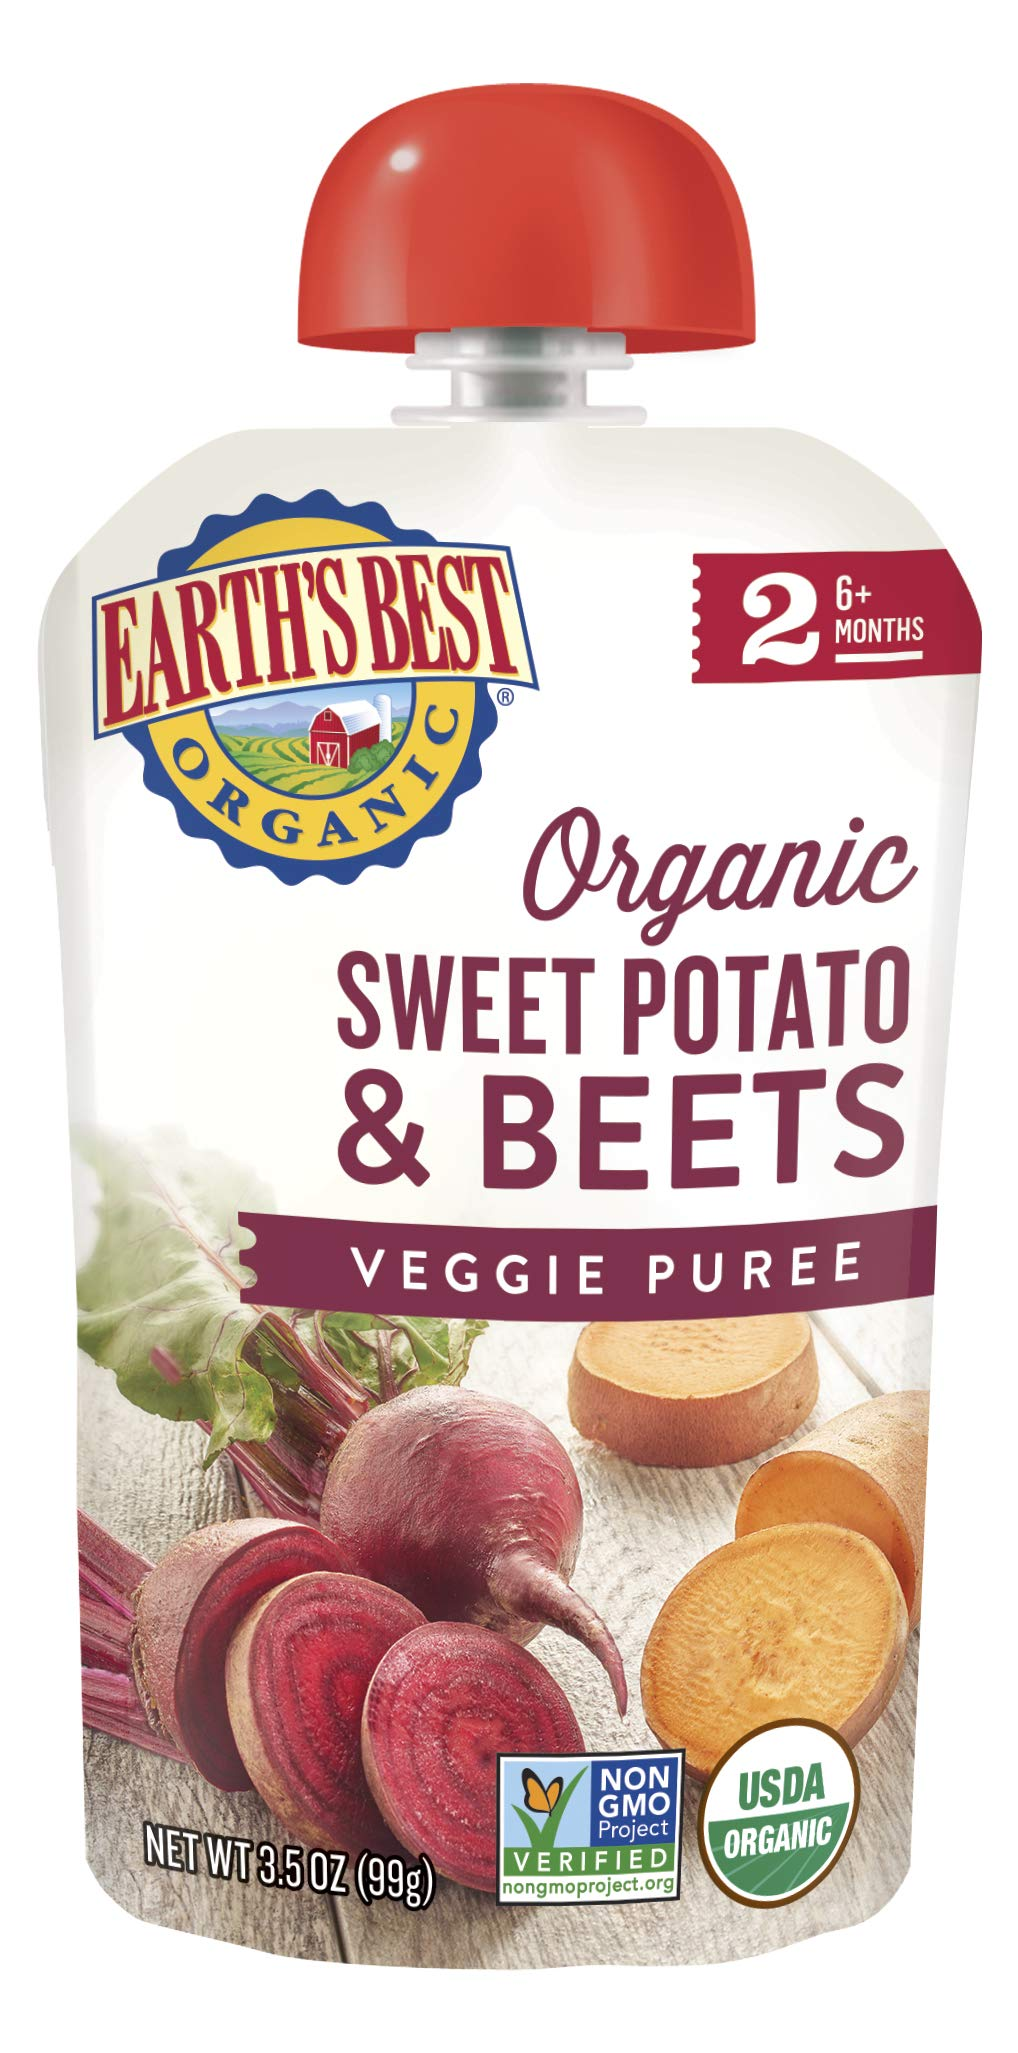 Earth's Best Organic Stage 2 Baby Food, Sweet Potato and Beets, 3.5 oz. Pouch (Pack of 12) by Earth's Best